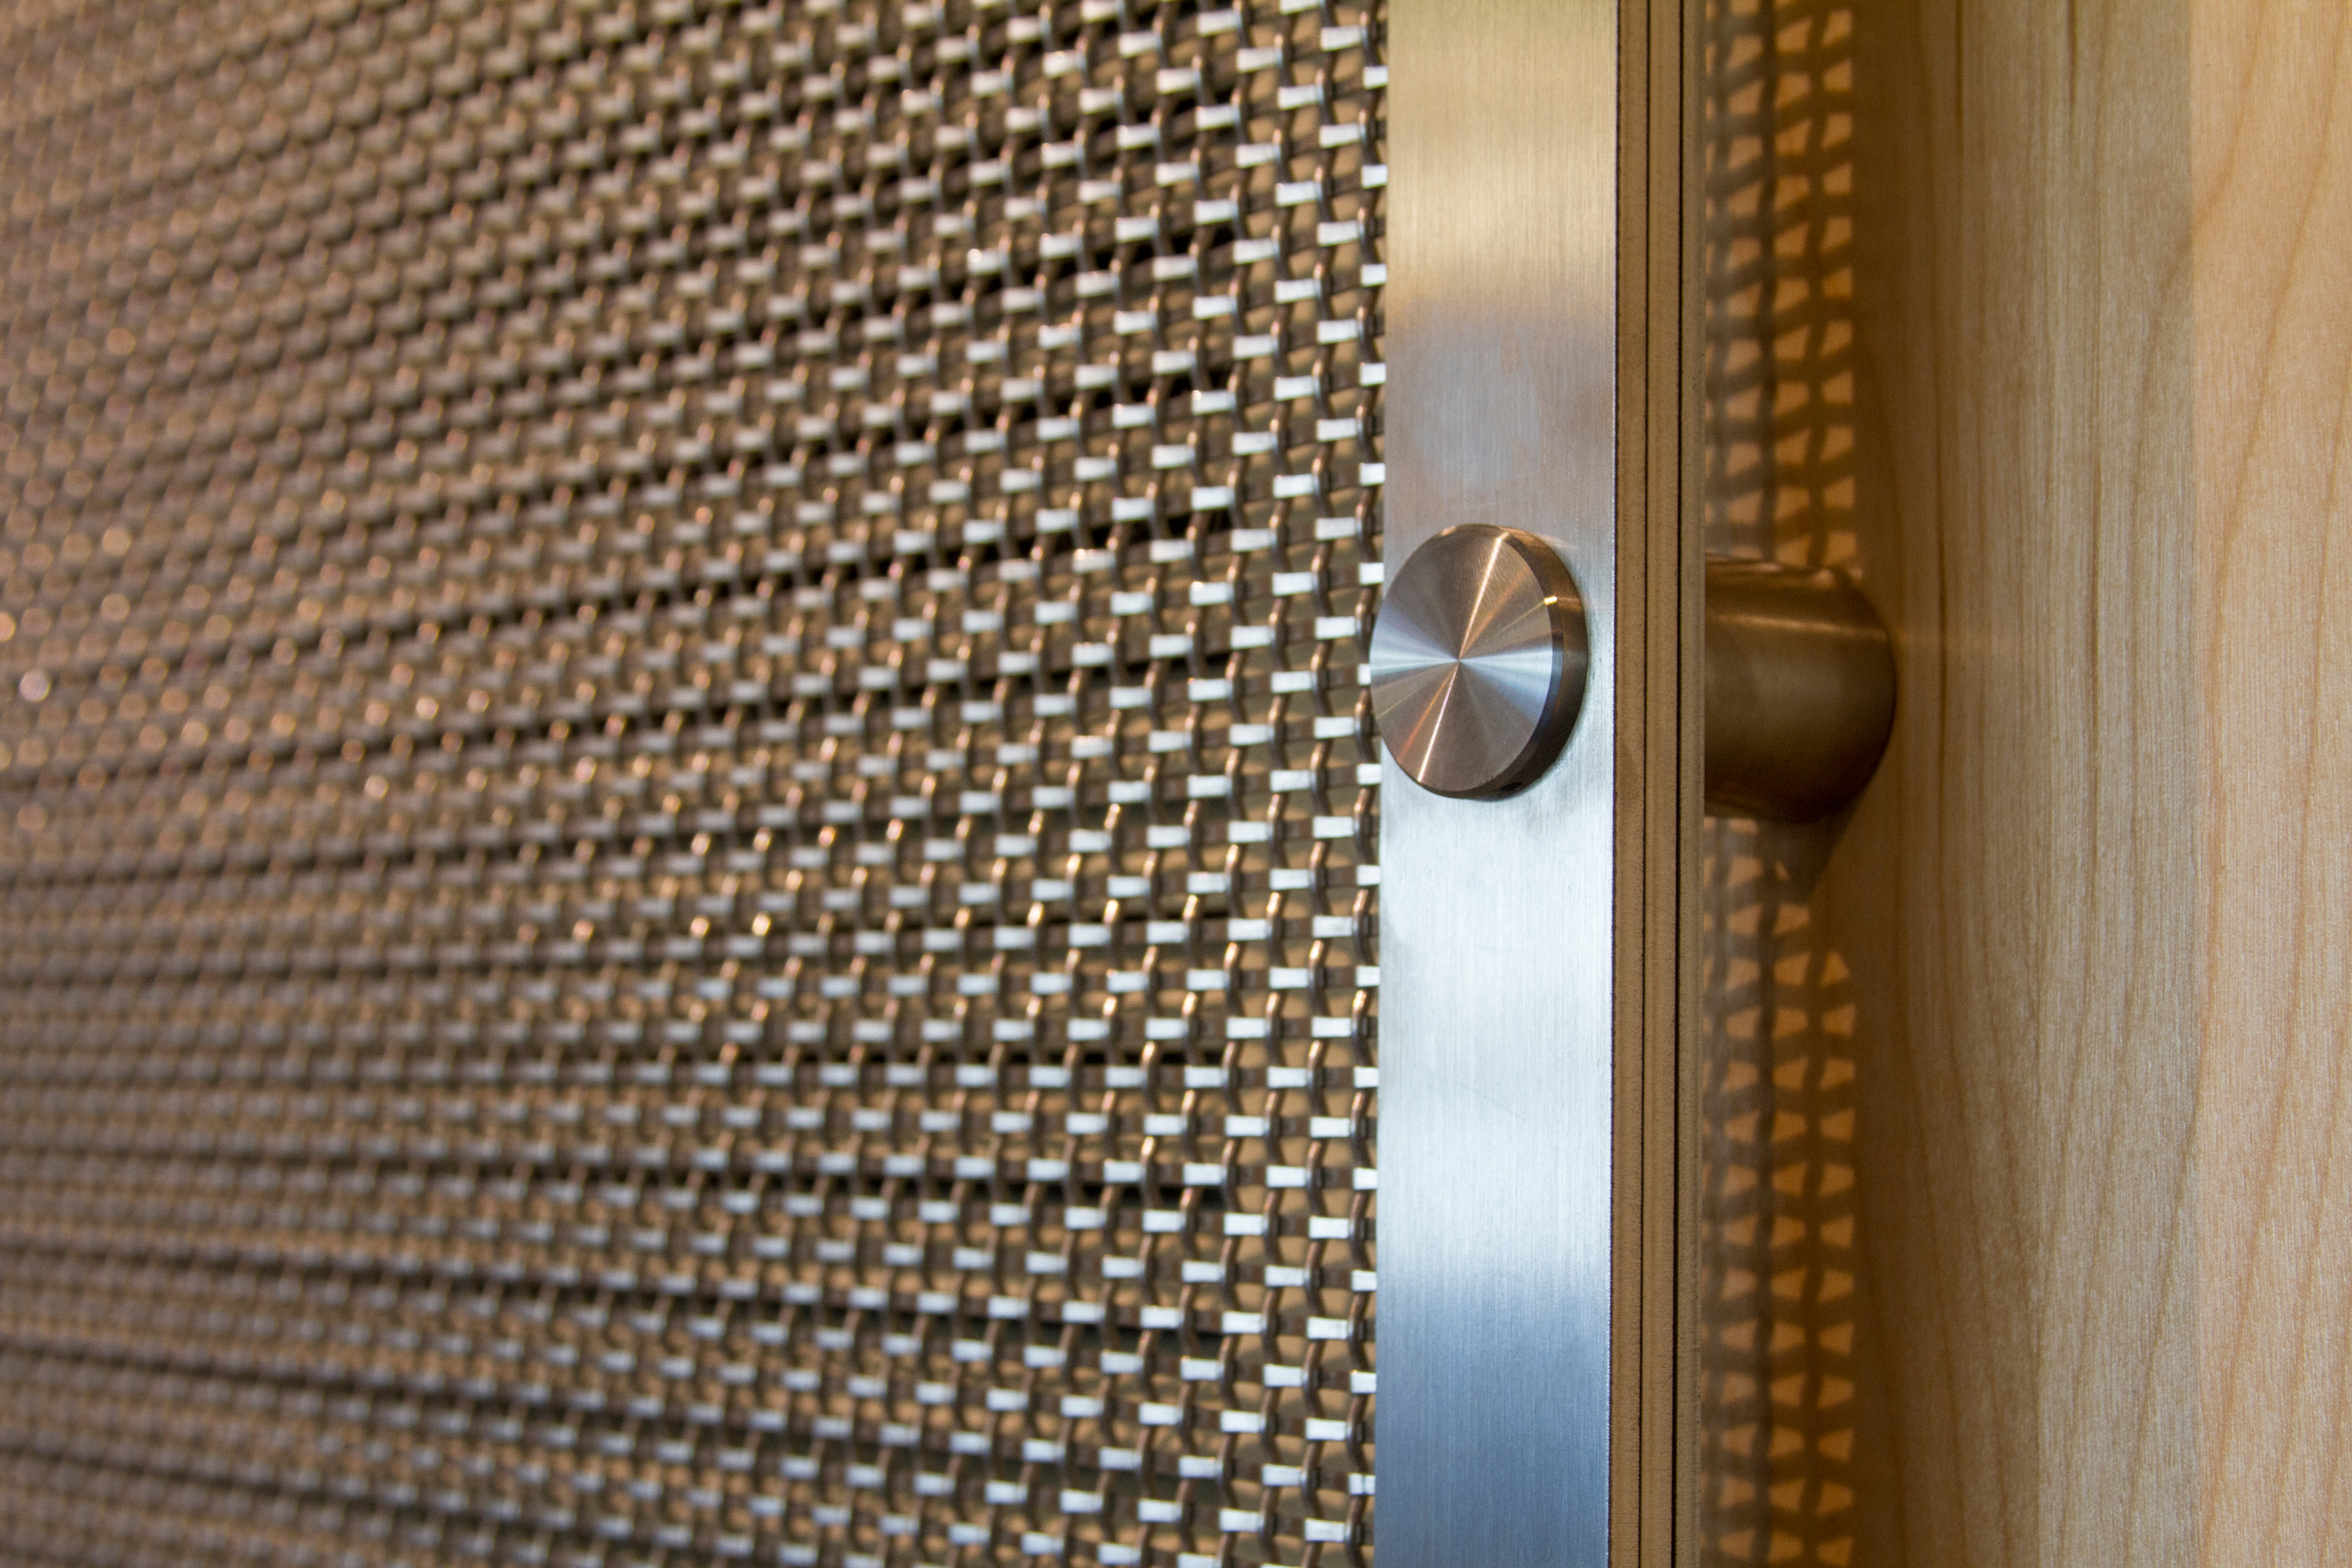 The panels utilize stainless steel standoff mounting hardware with decorative caps.